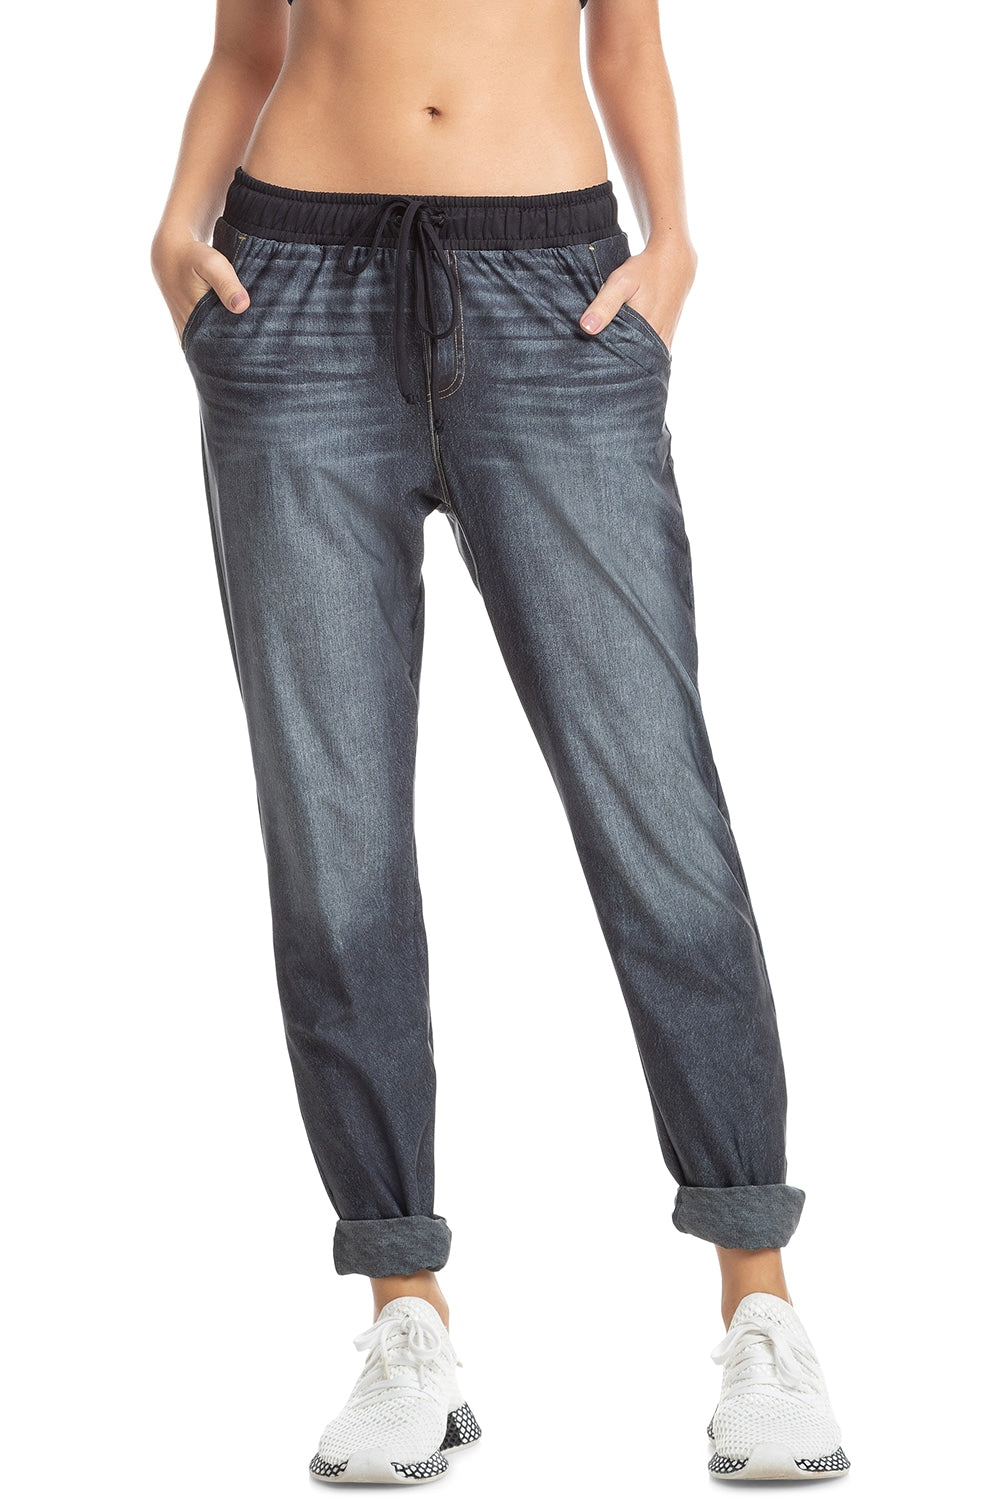 Metropolis Boy Denim 1